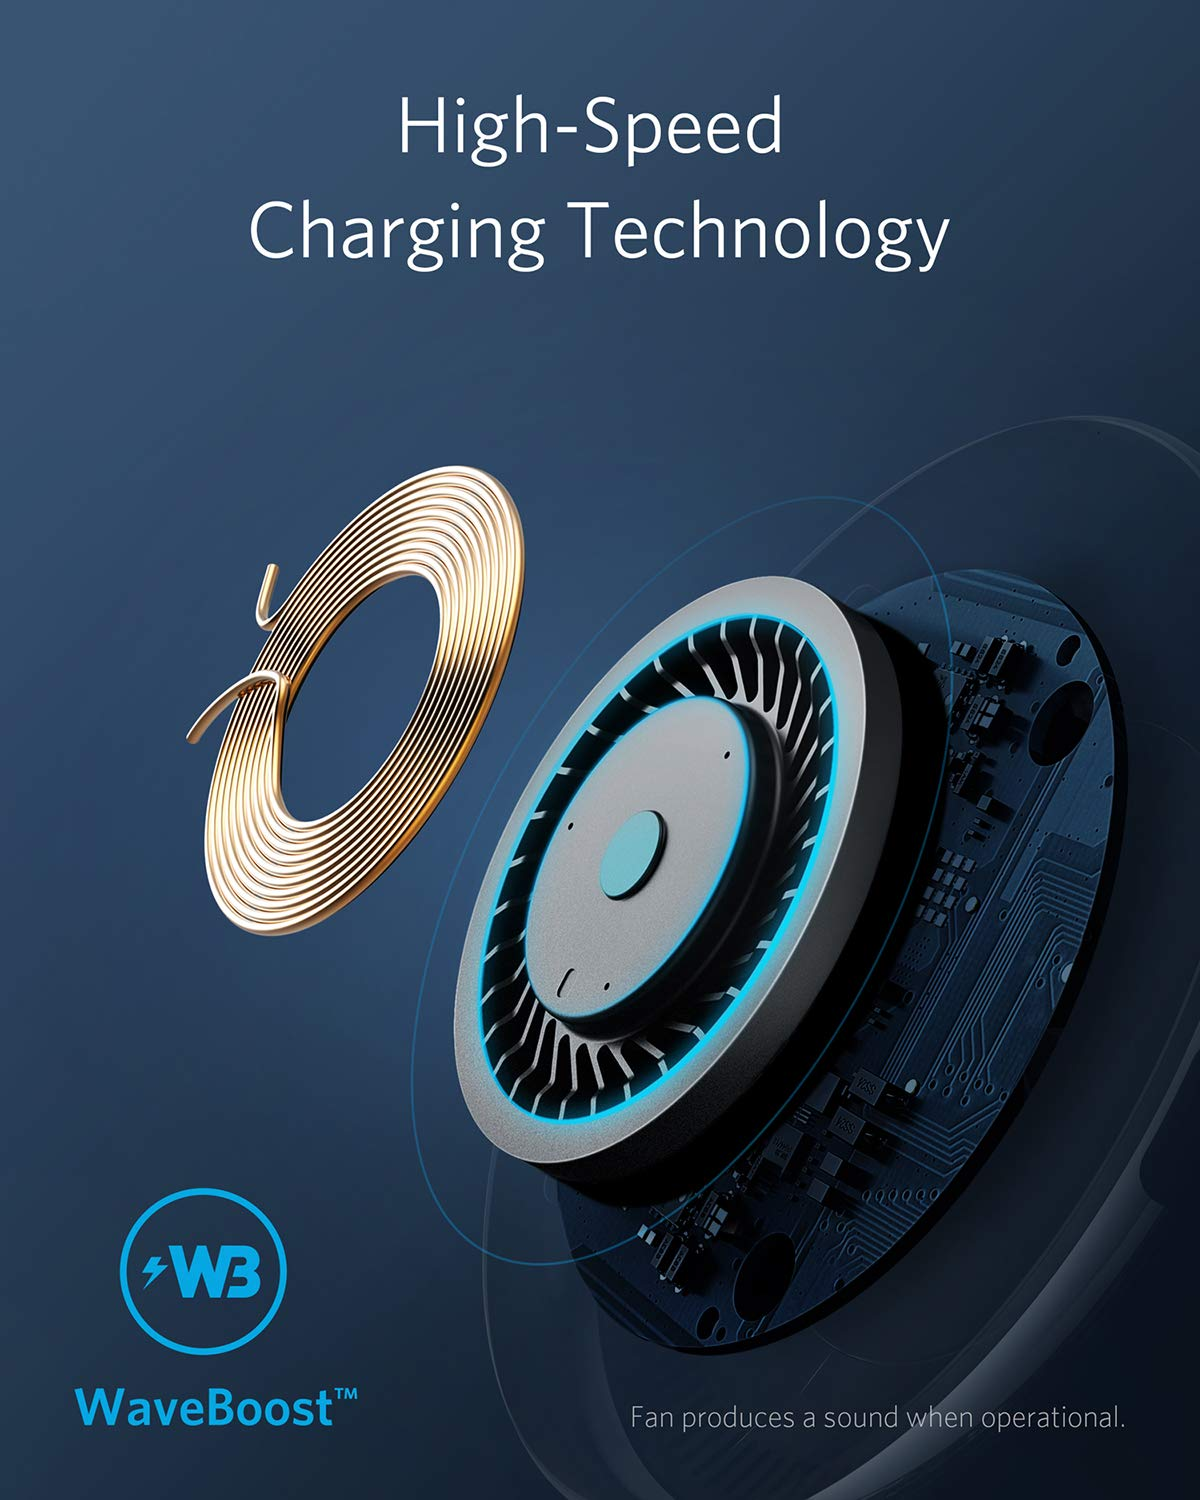 Anker PowerWave 7.5 Fast Wireless Charging Pad with Internal Cooling Fan 10W Charges Galaxy S9//S9+//S8 Qi-Certified 7.5W Compatible iPhone Xs Max//XR//XS//X//8//8 Plus LG G7 with Quick Charge Adapter